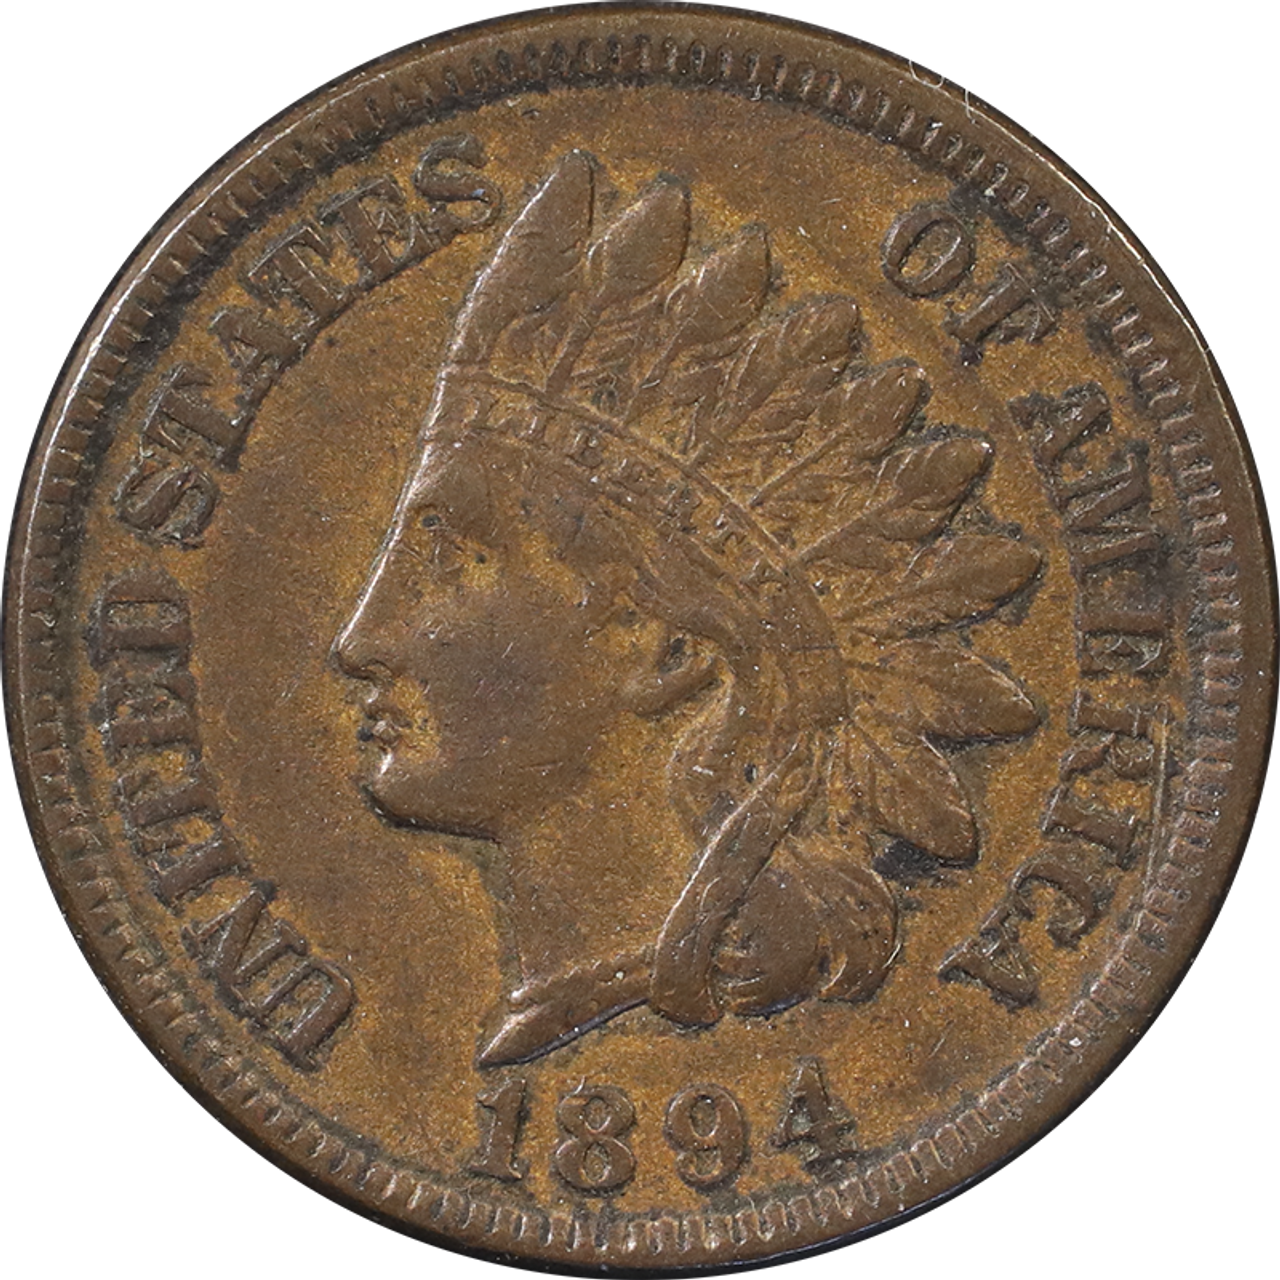 1894 Indian Head Penny Circulated Bullion Shark,Pictures Of Ribs On The Grill